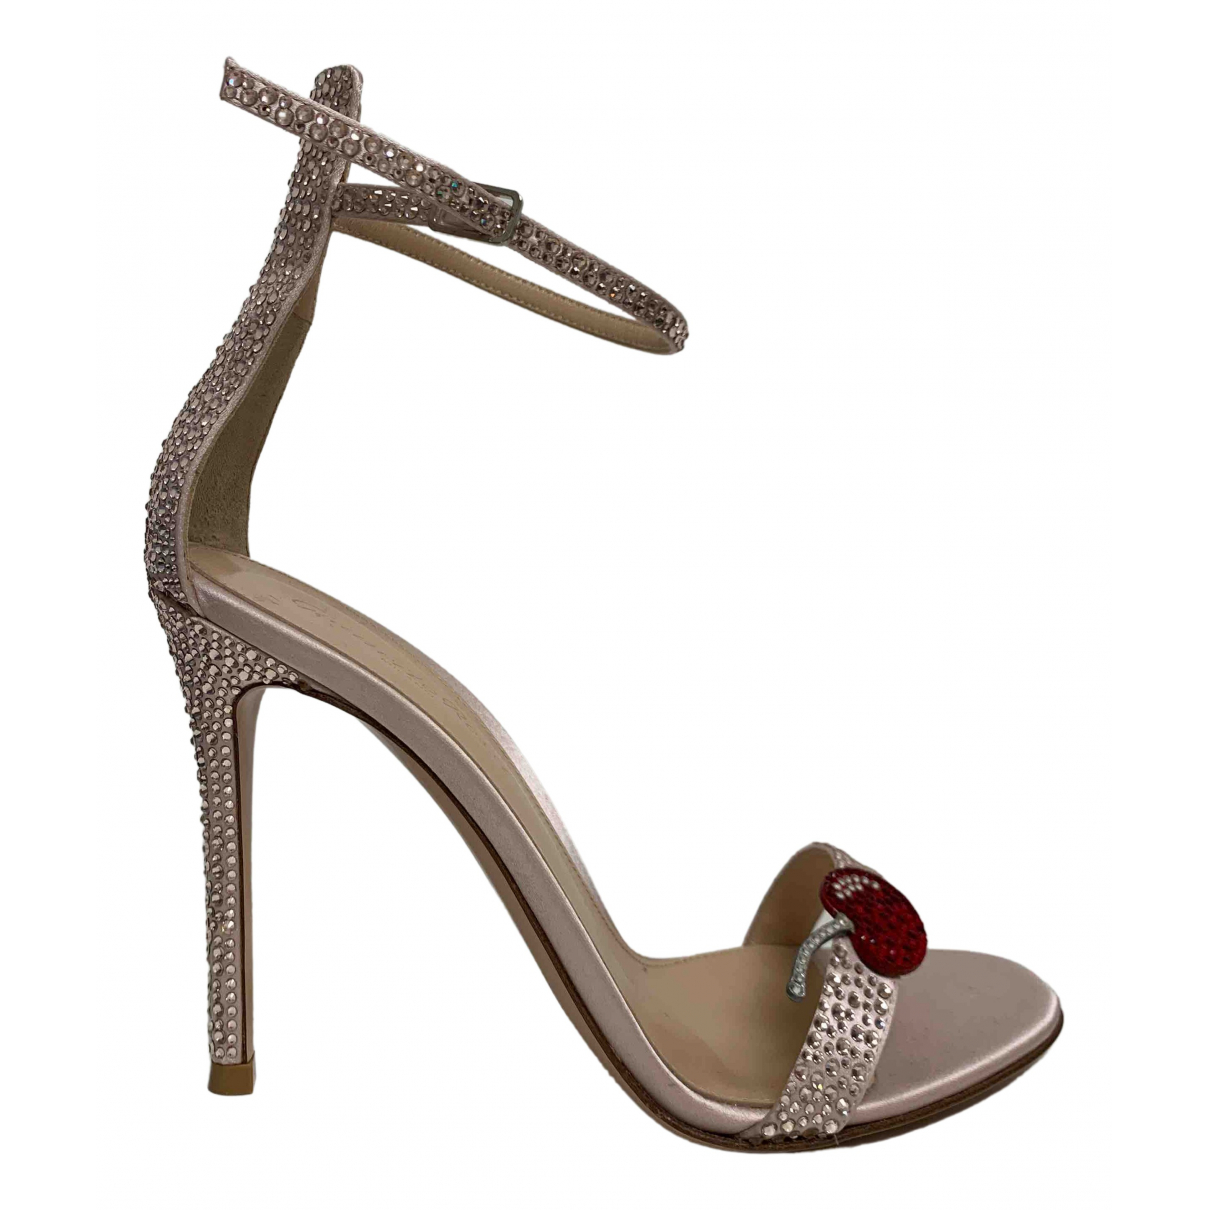 Gianvito Rossi N Pink Cloth Sandals for Women